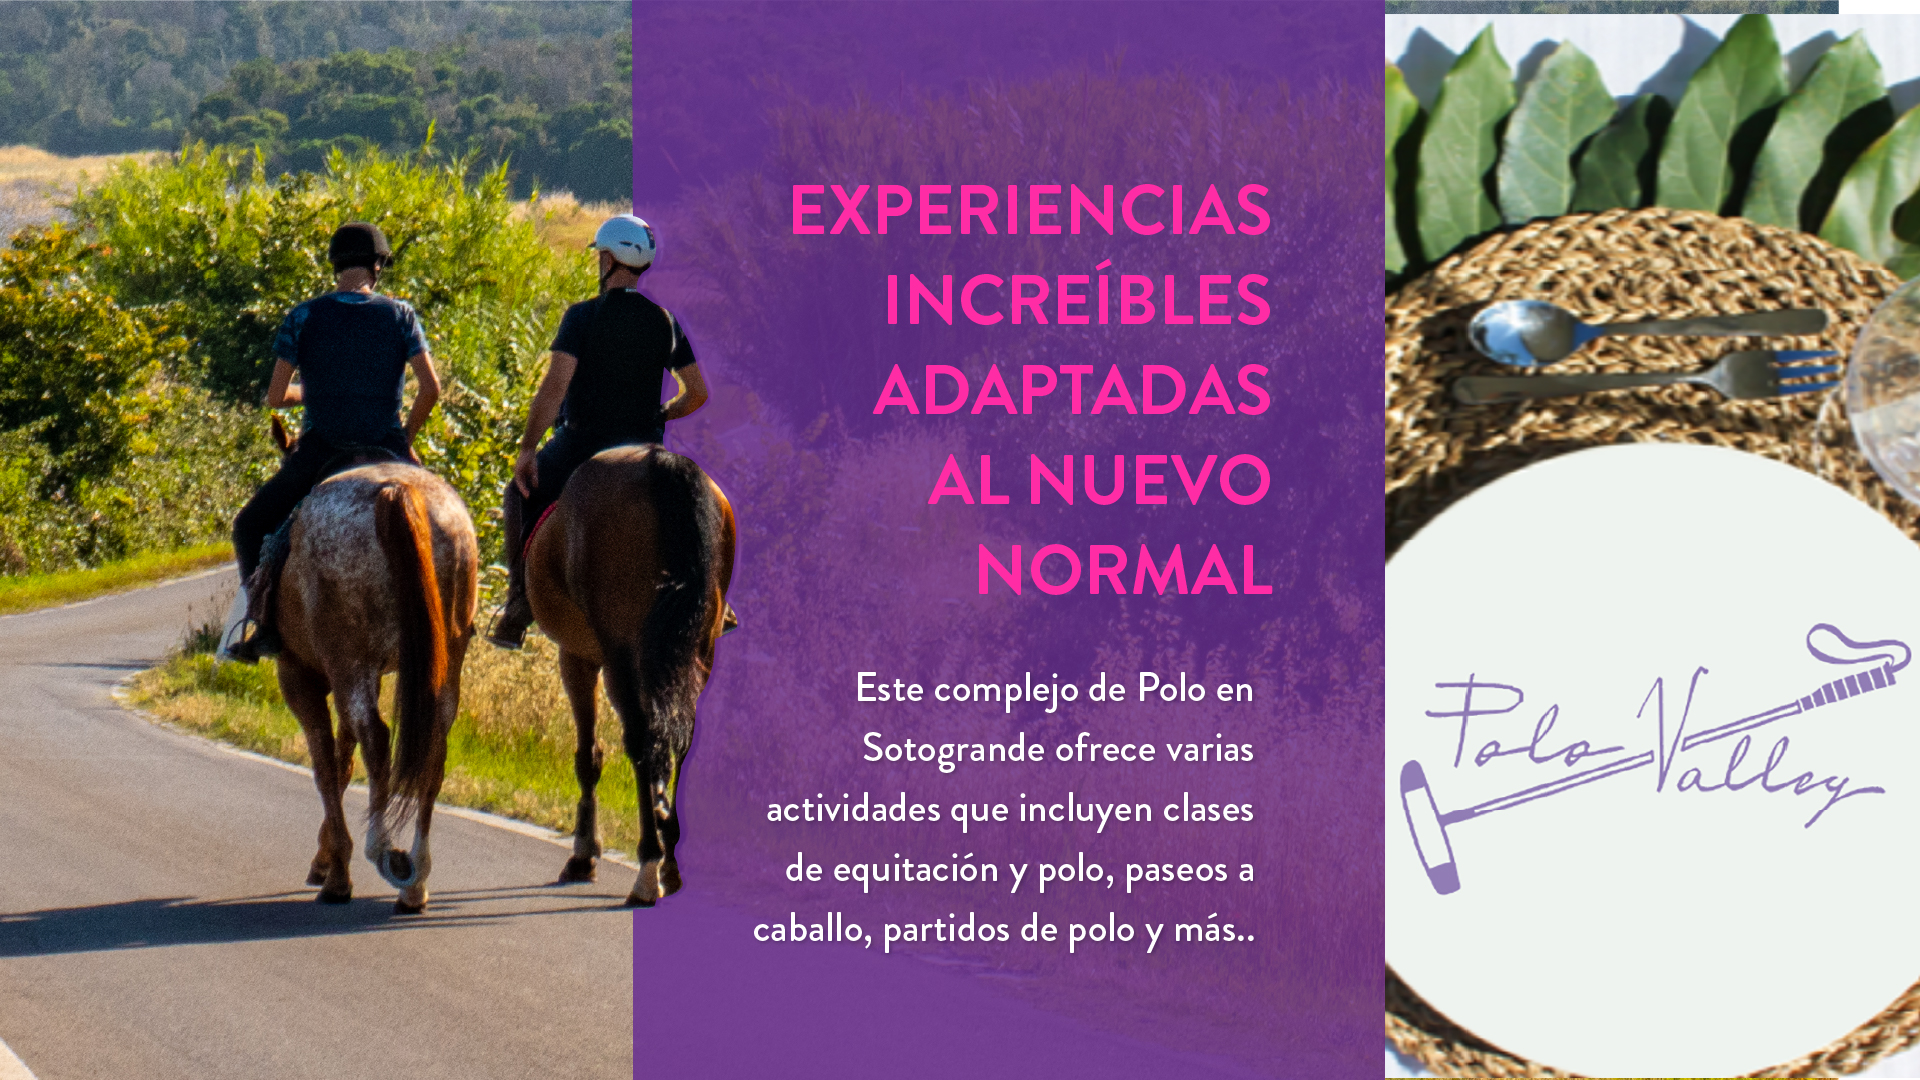 polo-valley-new-experiences-adapted-to-new-normal-noll-sotogrande-blog-may-2020_3